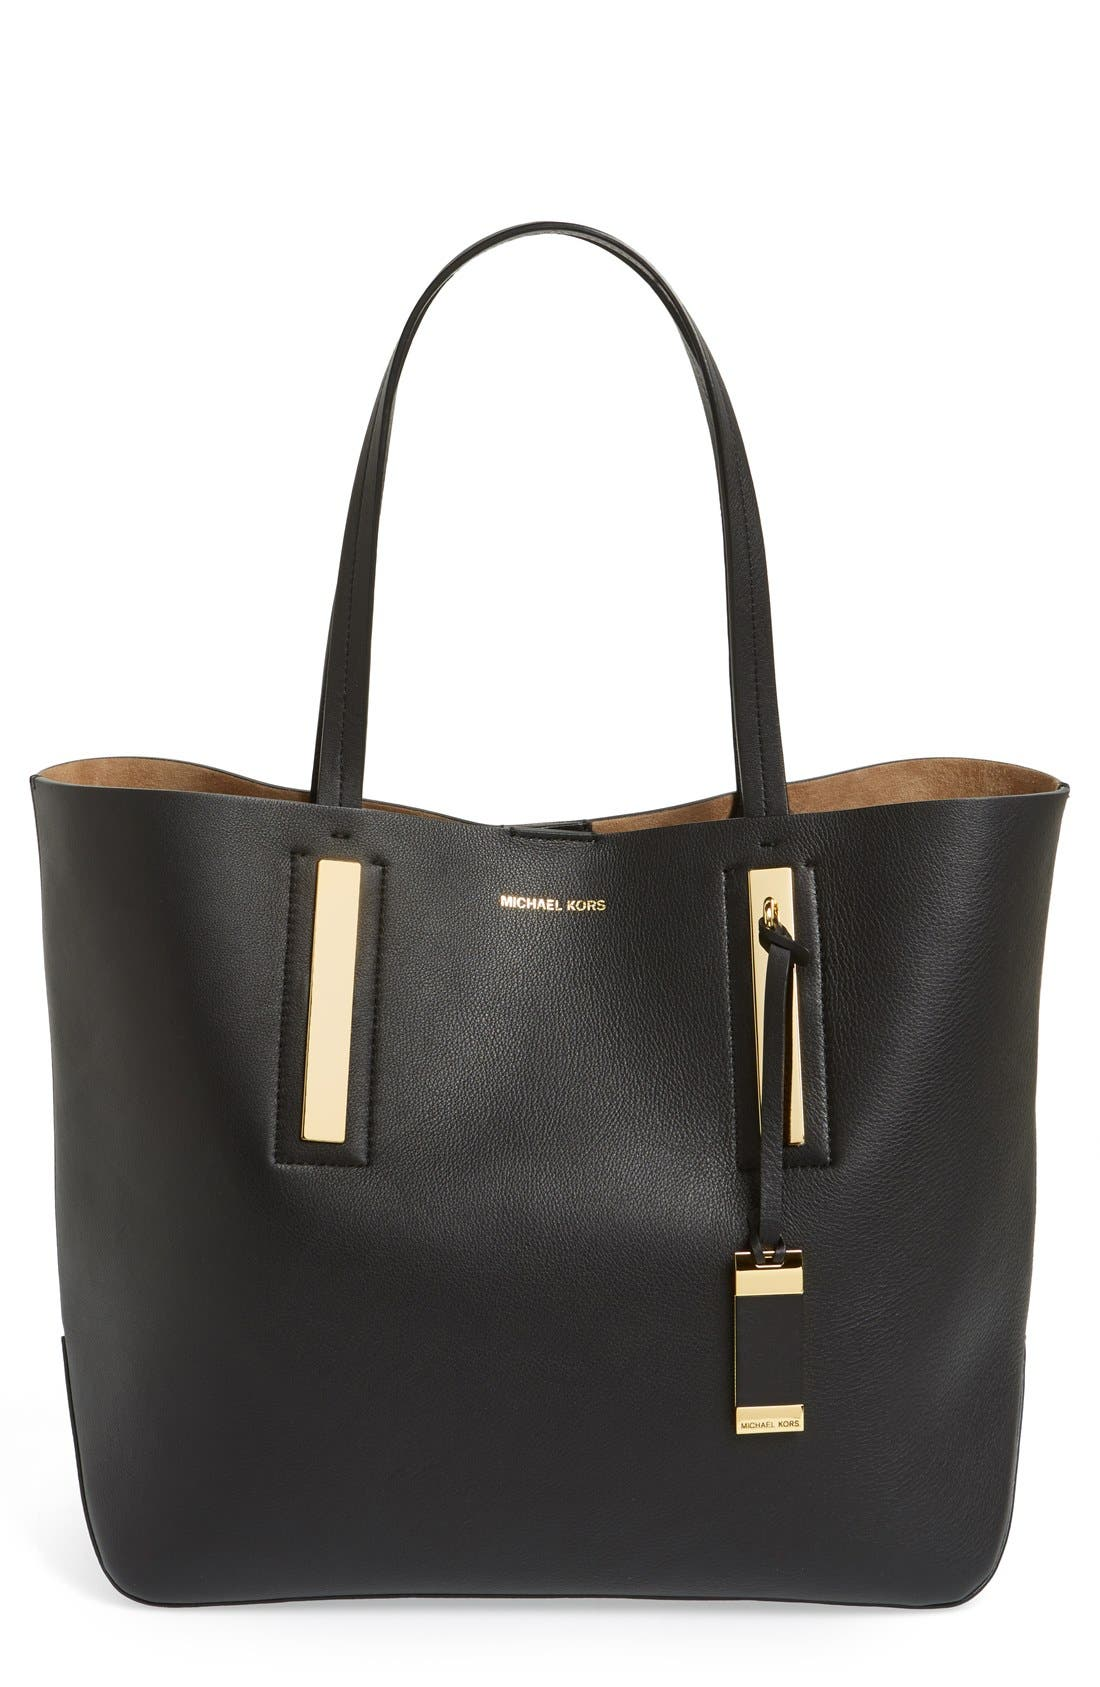 Alternate Image 1 Selected - Michael Kors 'Large Jaryn' Leather Tote